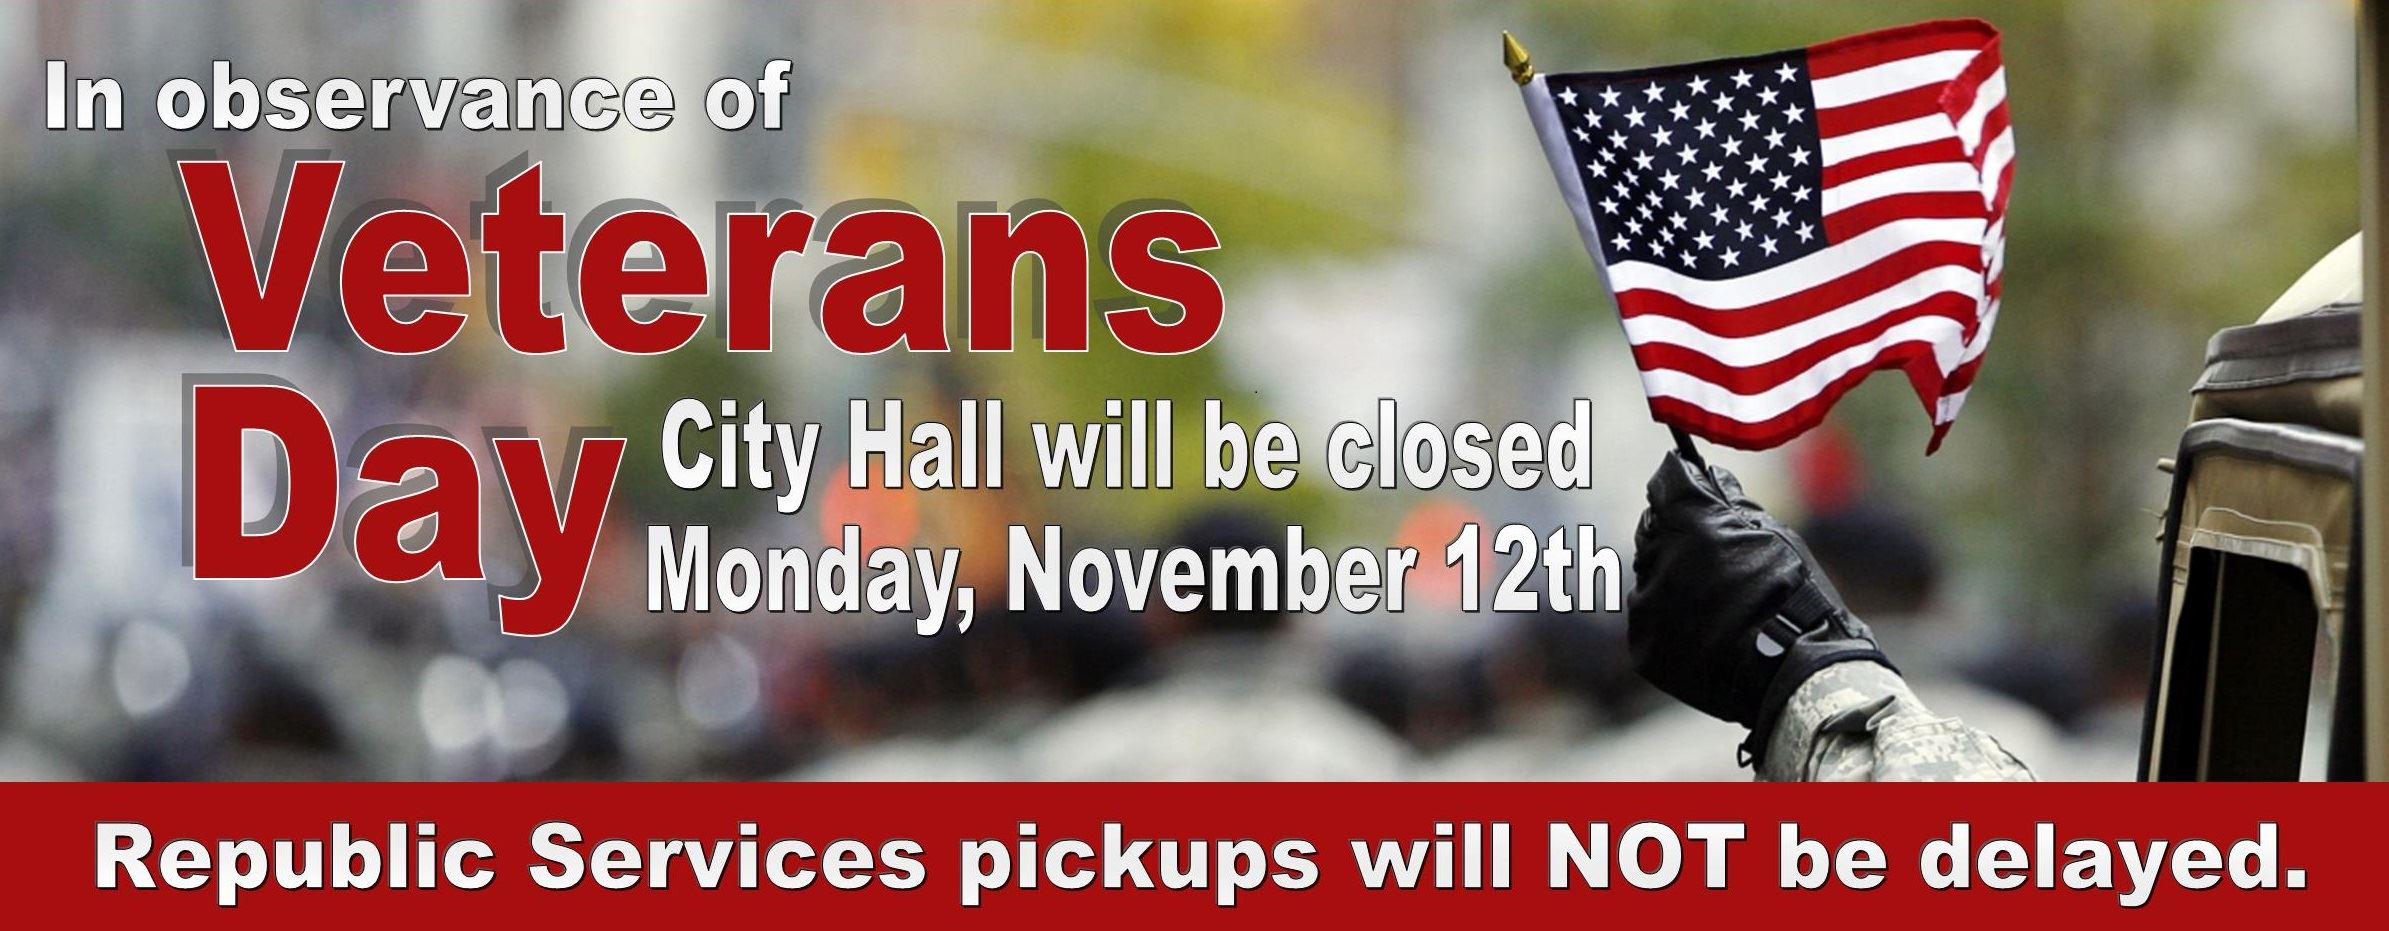 Veterans day closed